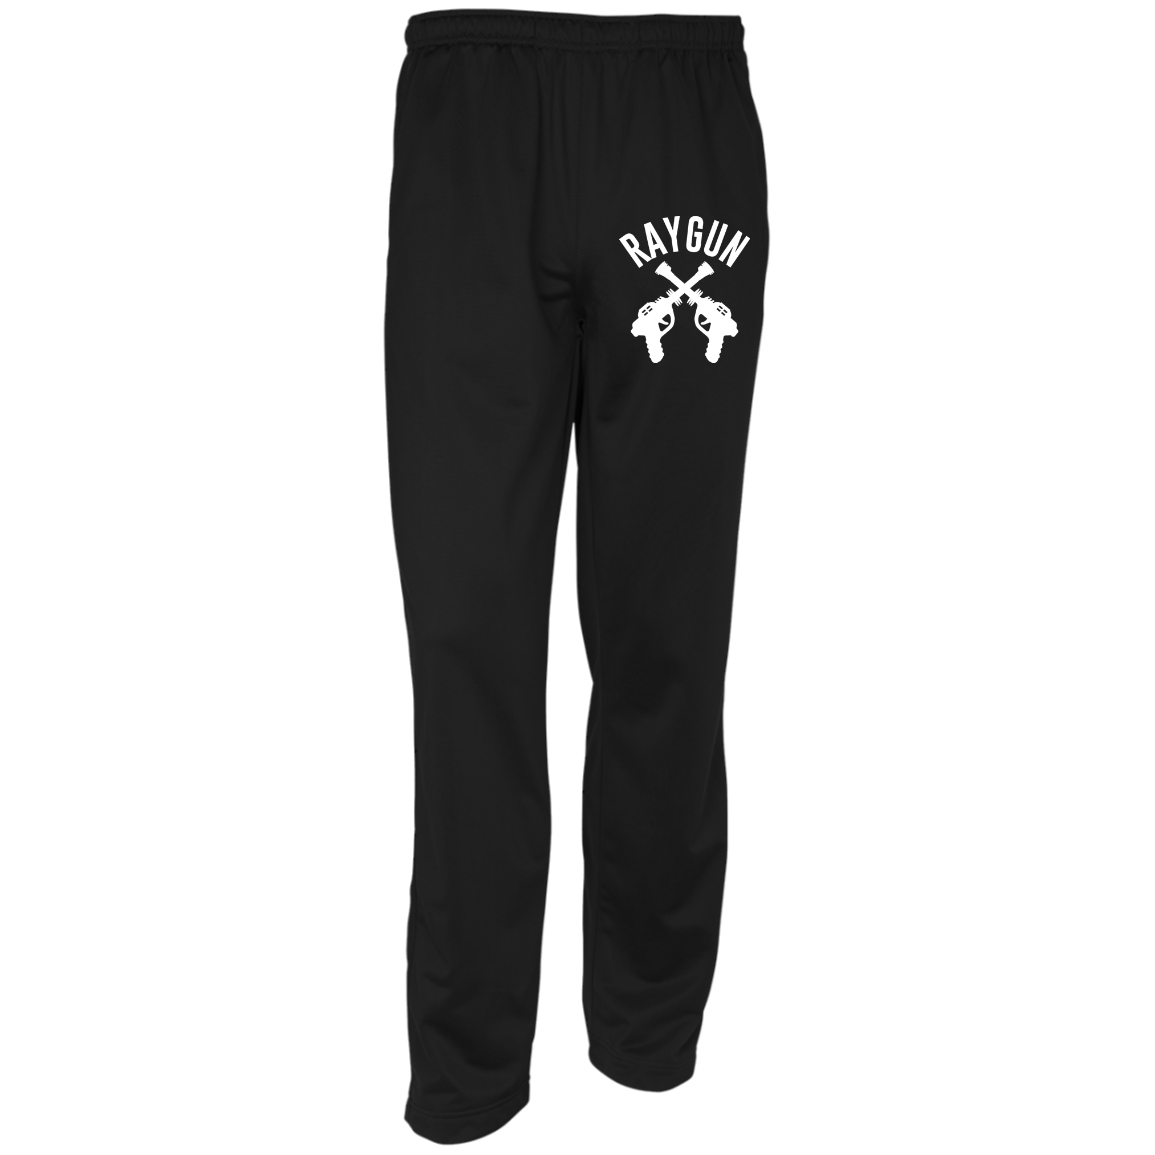 RAYGUN Double Guns Men's Warm-Up Track Pants